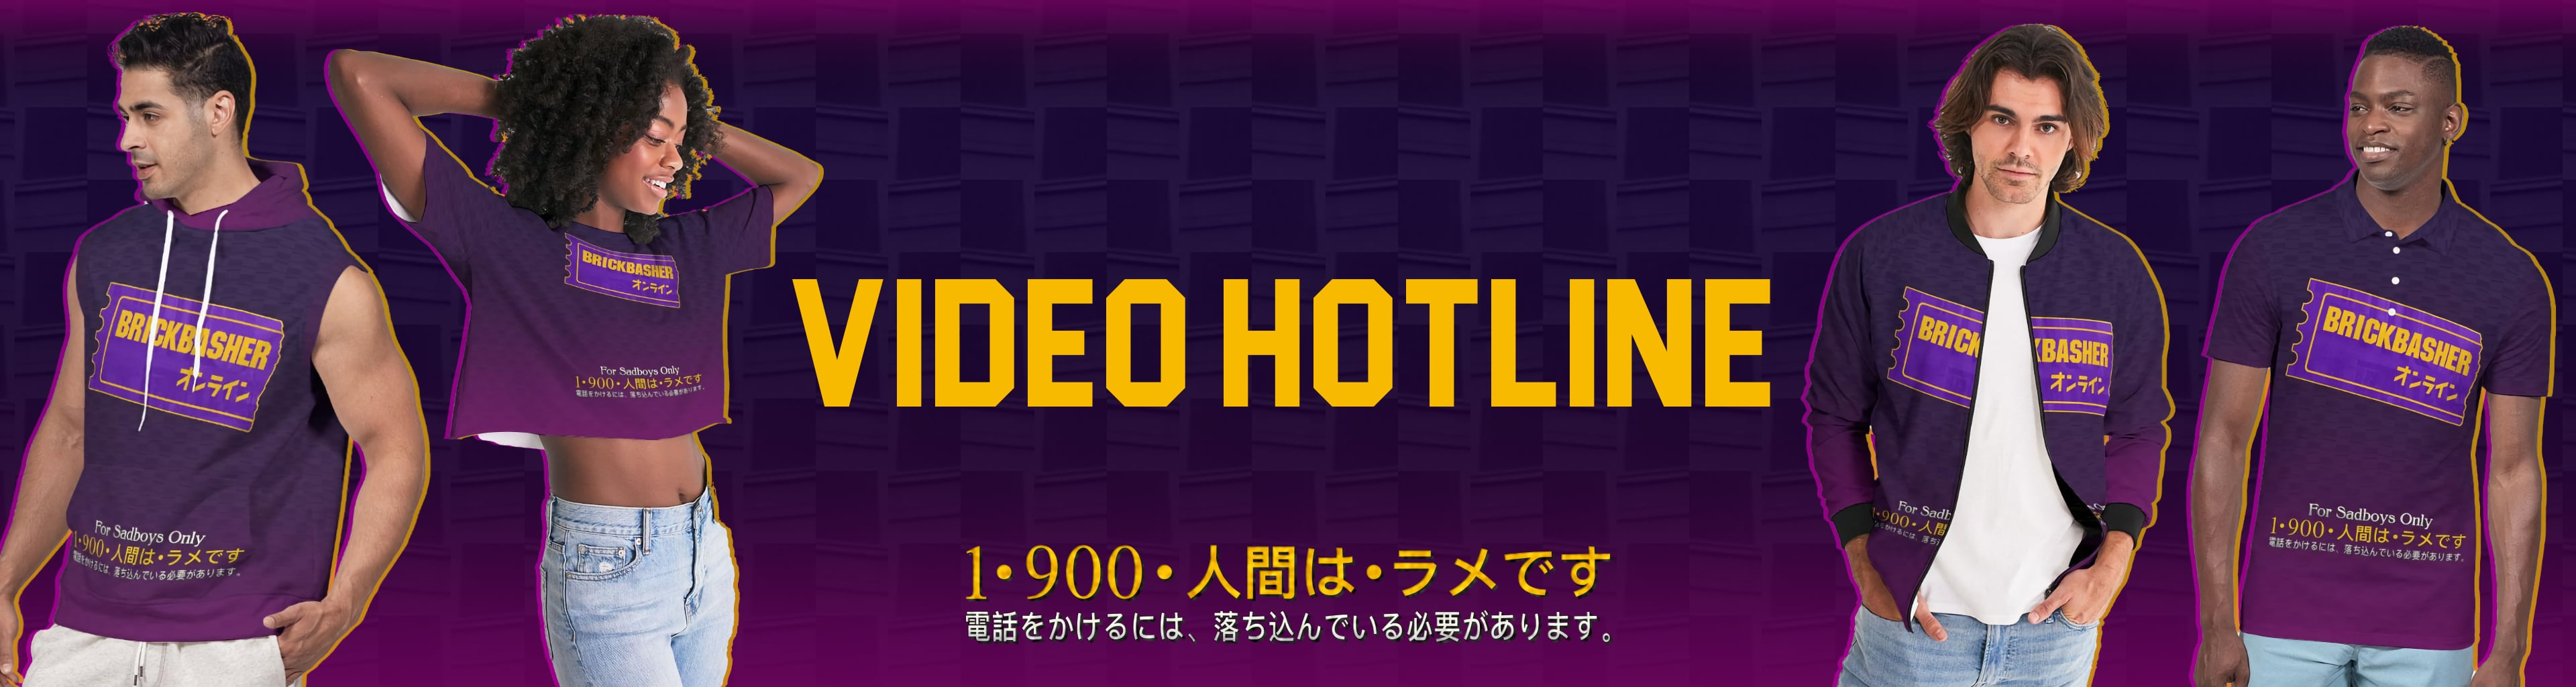 Video Hotline Collection Banner